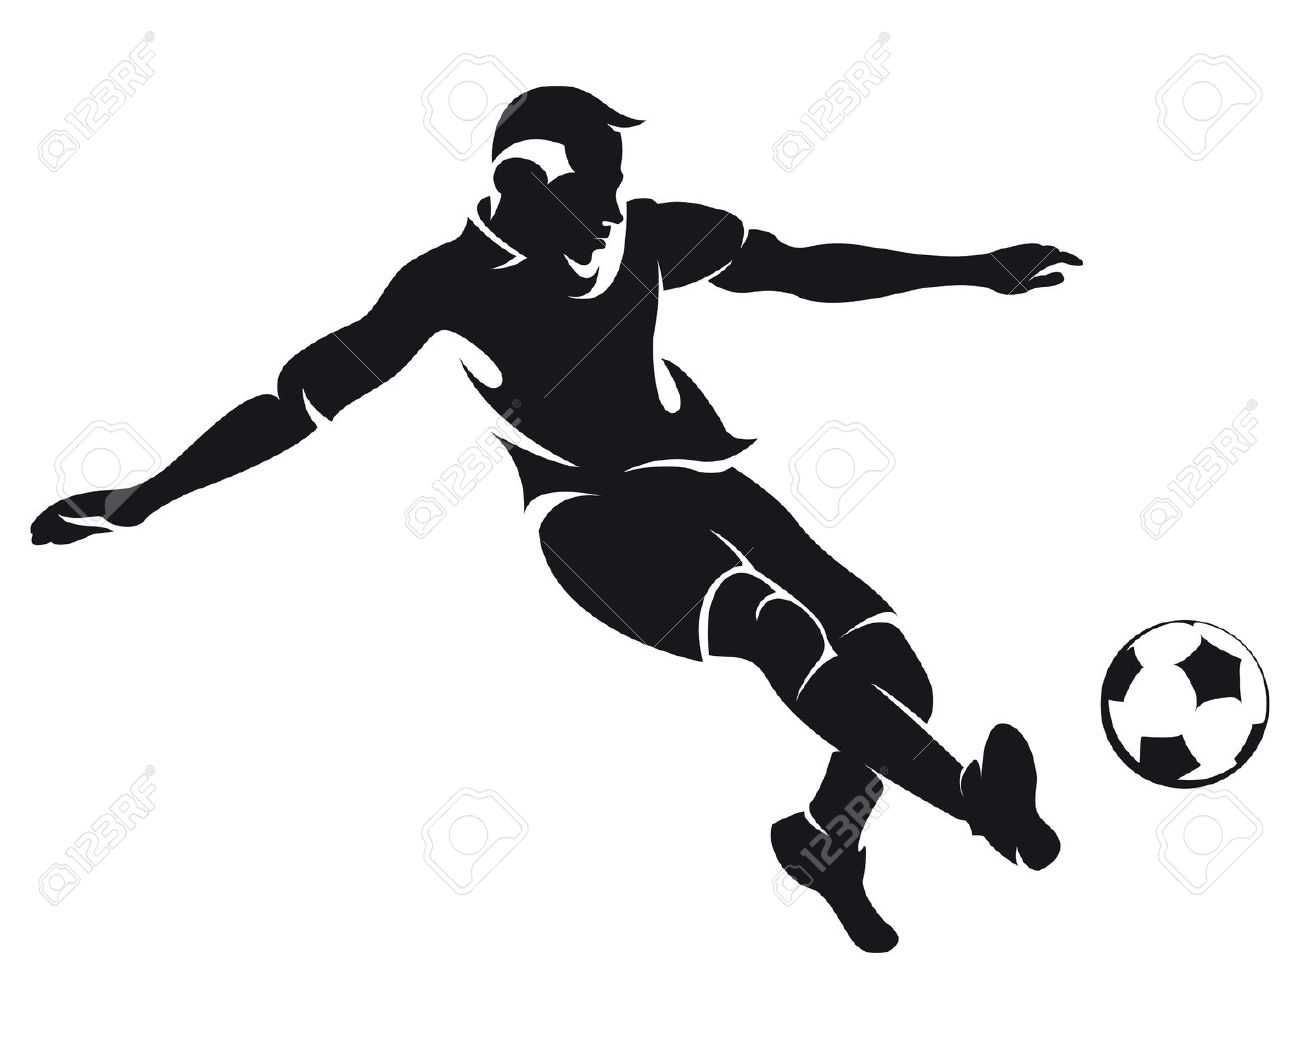 Footbawler clipart clipart free download 103+ Football Players Clipart | ClipartLook clipart free download